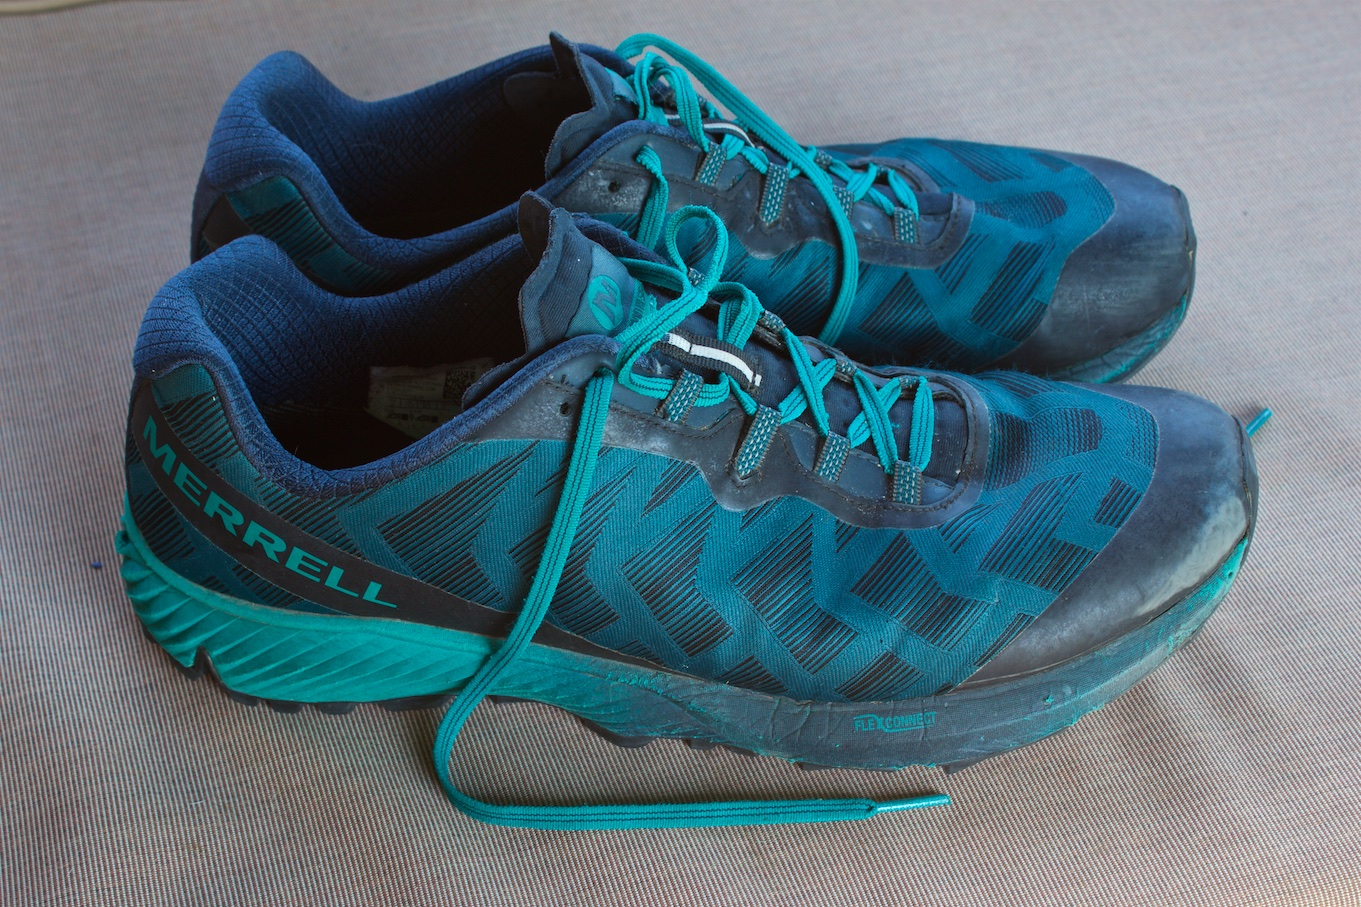 The Merrell Agility Synthesis Flex Trail Running Shoe